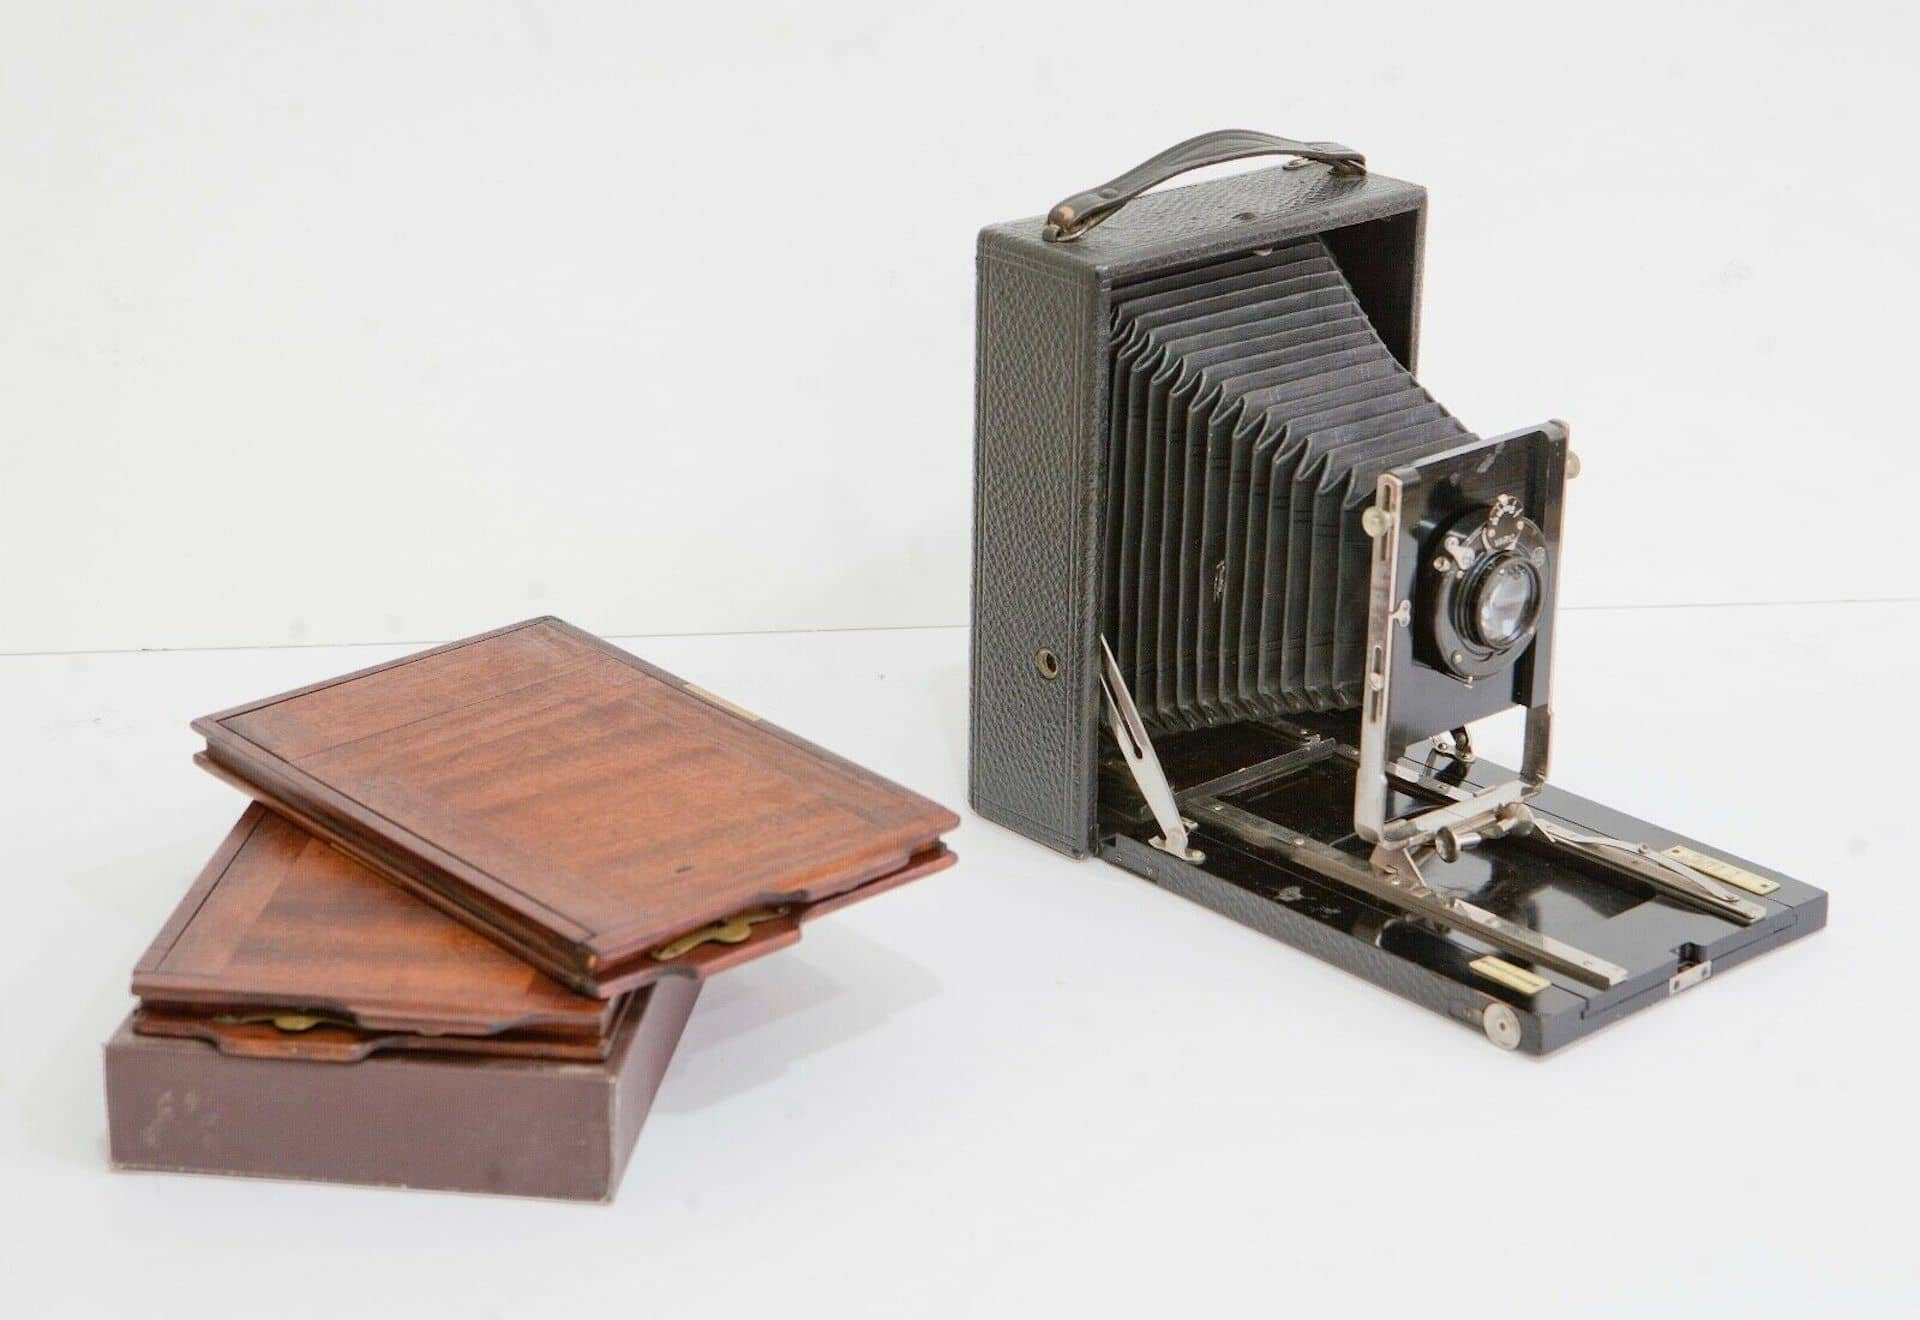 Best Photo Gifts for Photographers - Ideas Photographer Lovers - Vintage Camera